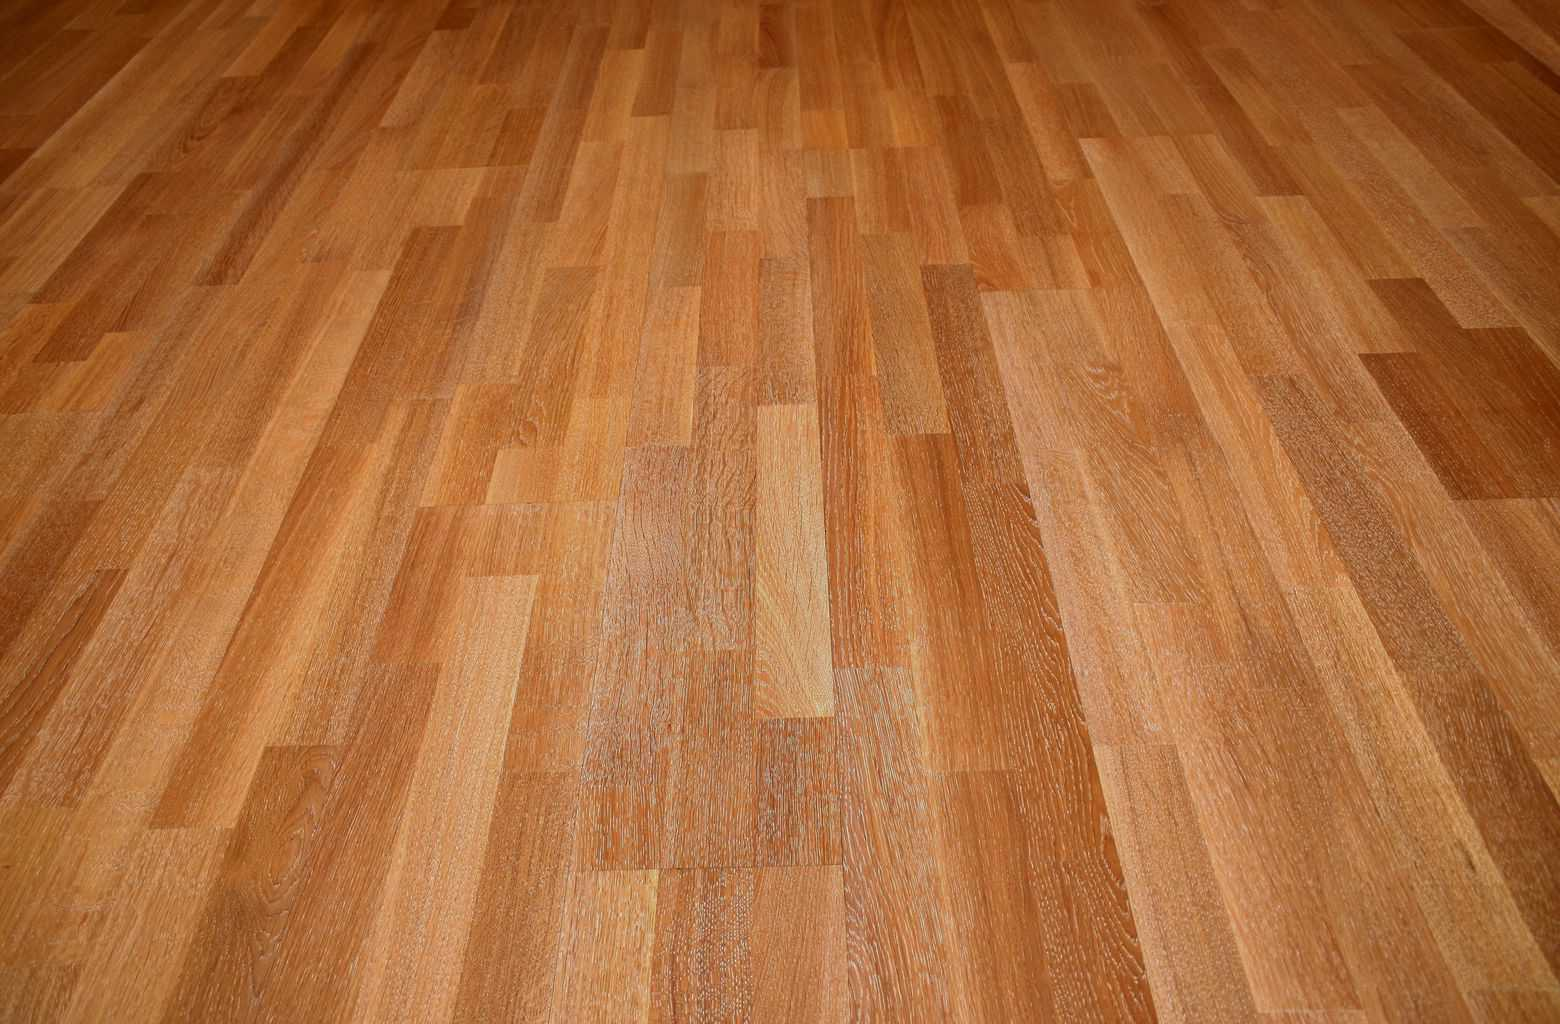 Types of laminate flooring options oak walnut pine - What is laminate flooring ...